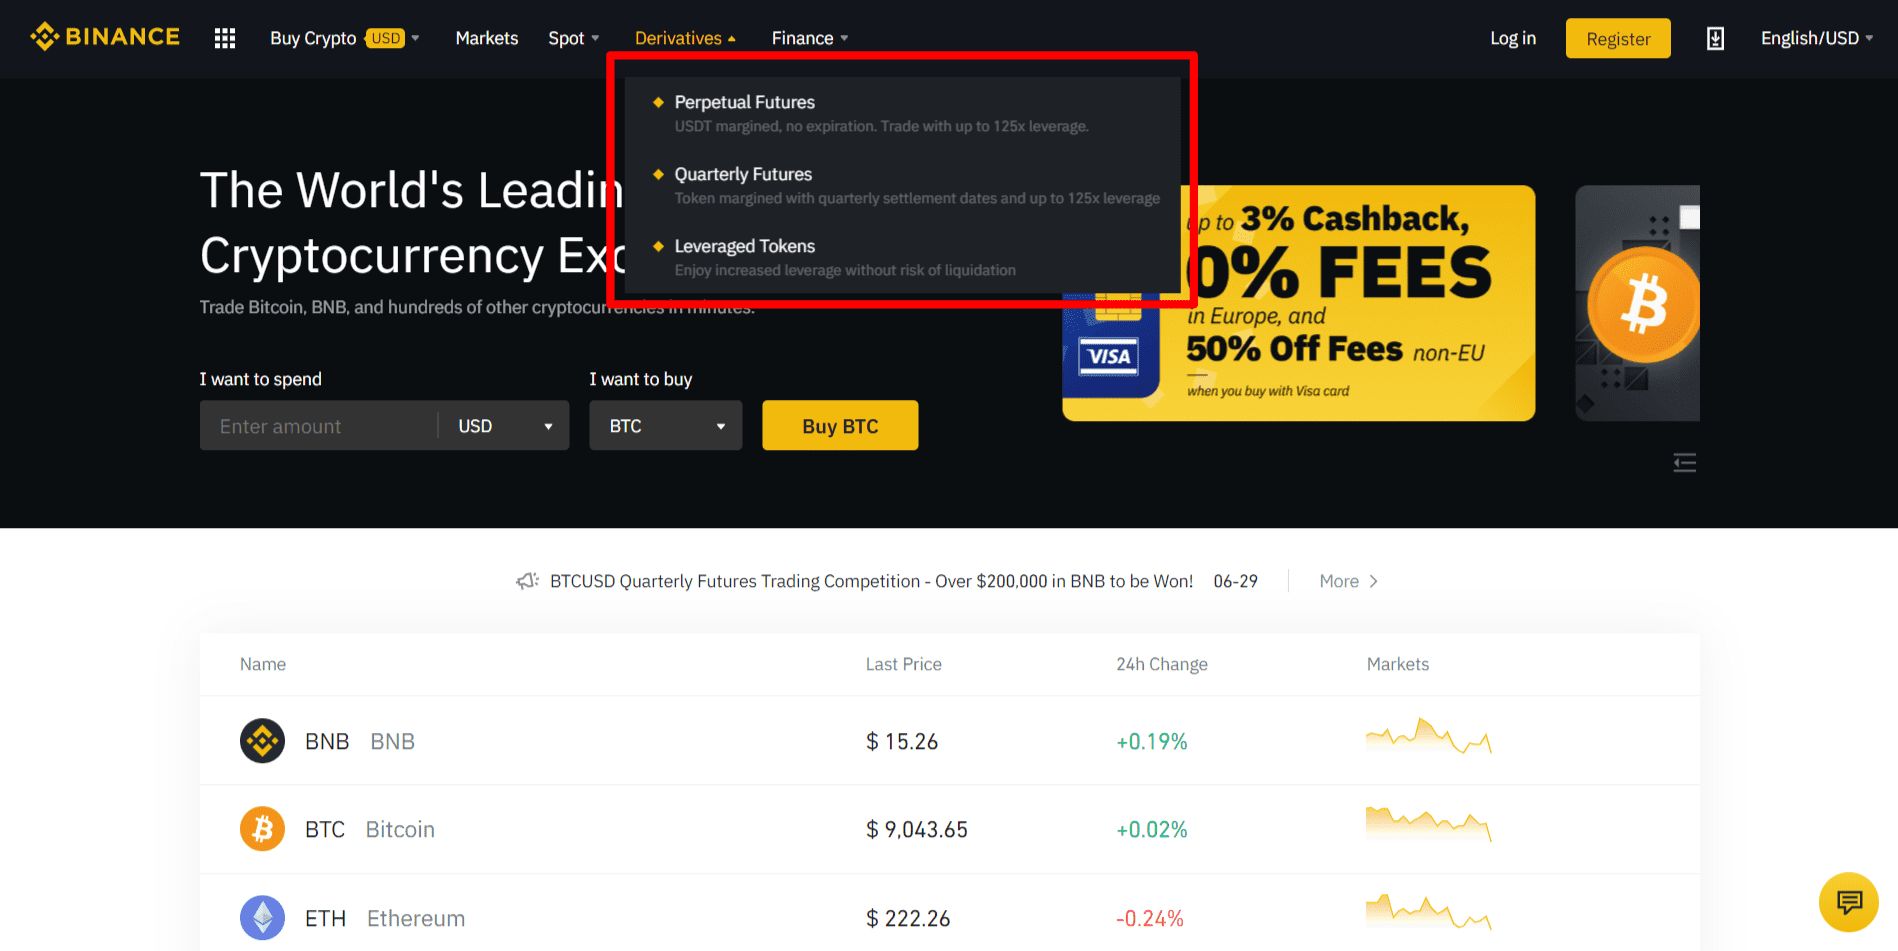 Binance Futures Derivatives-Market